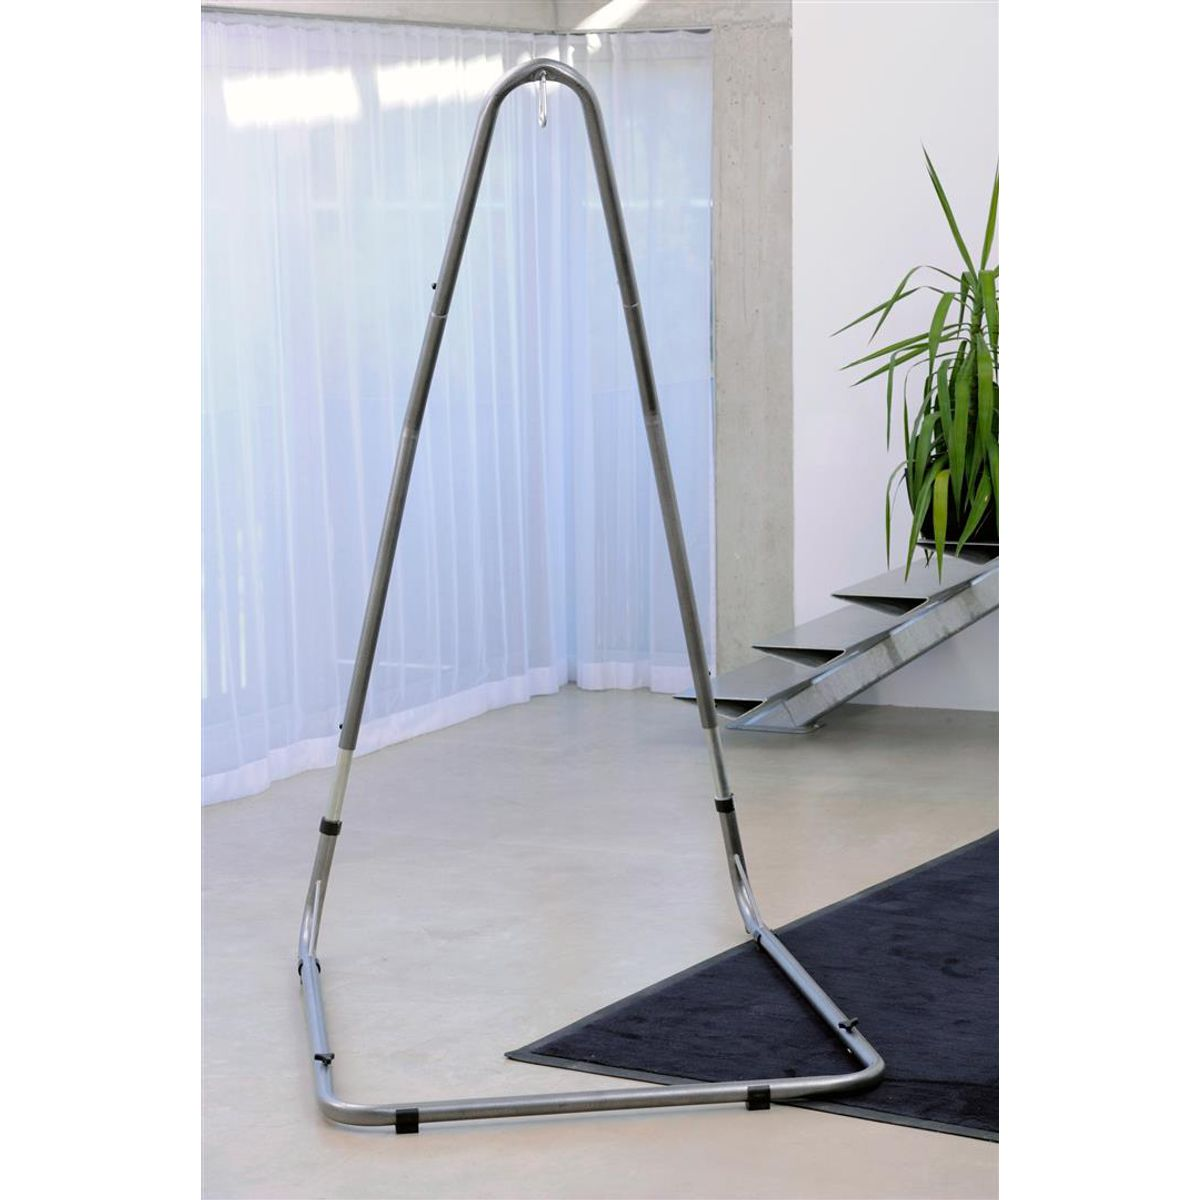 Amazonas Luna RockStone Metal Hanging Chair Stand - Ruby's Garden Boutique